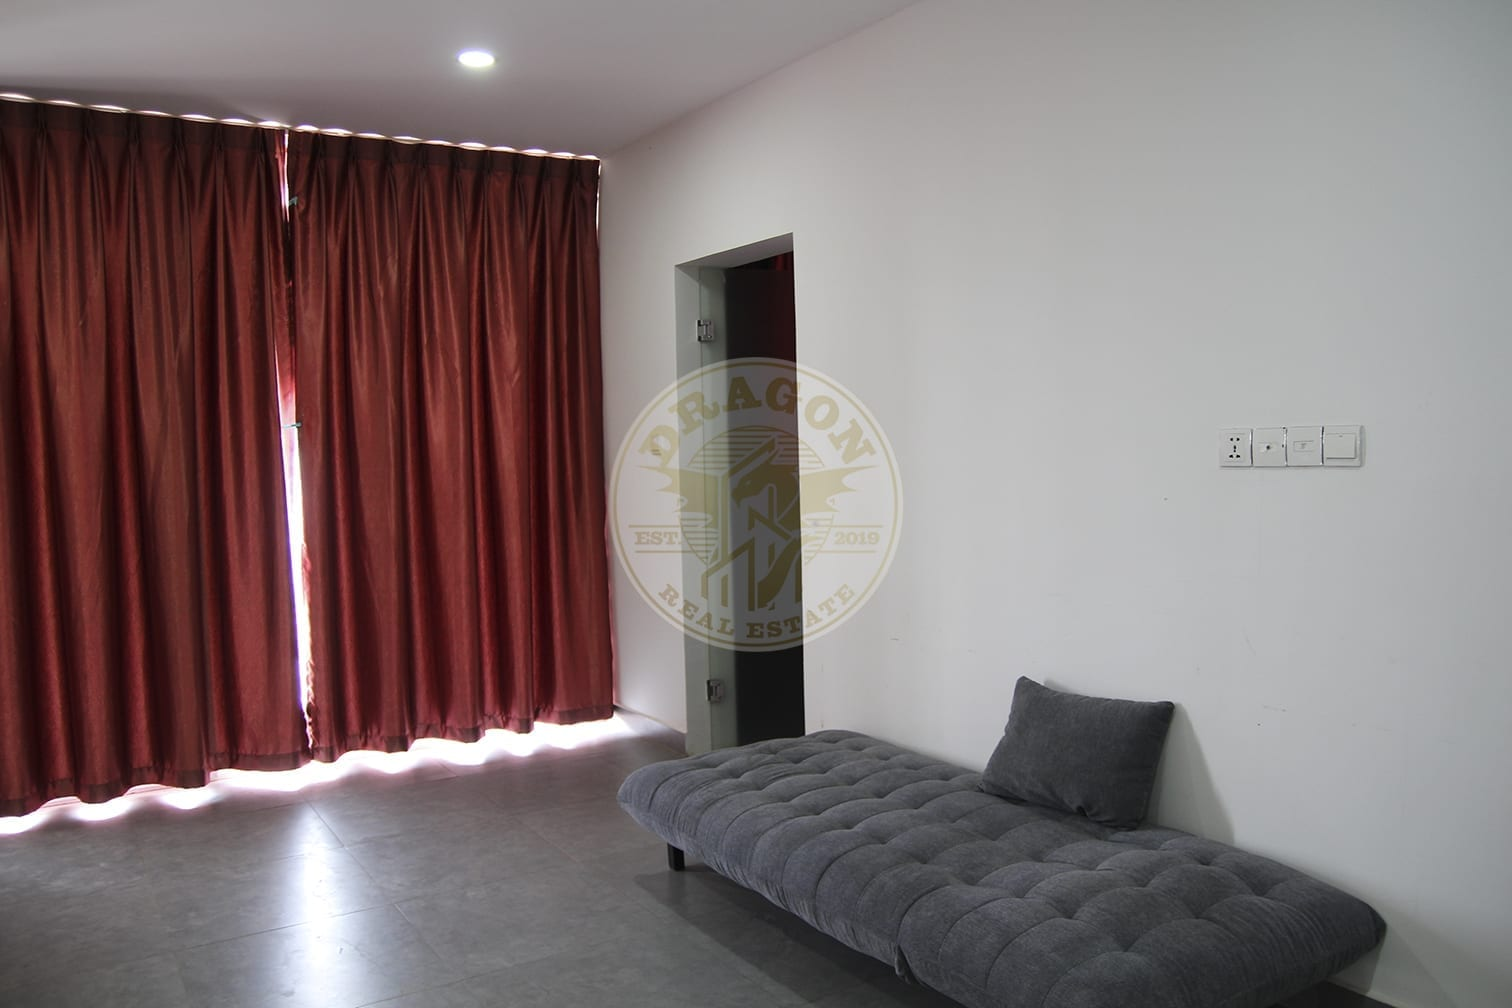 Villa with 6 Bedrooms and Bathroom. Real Estate in Sihanoukville